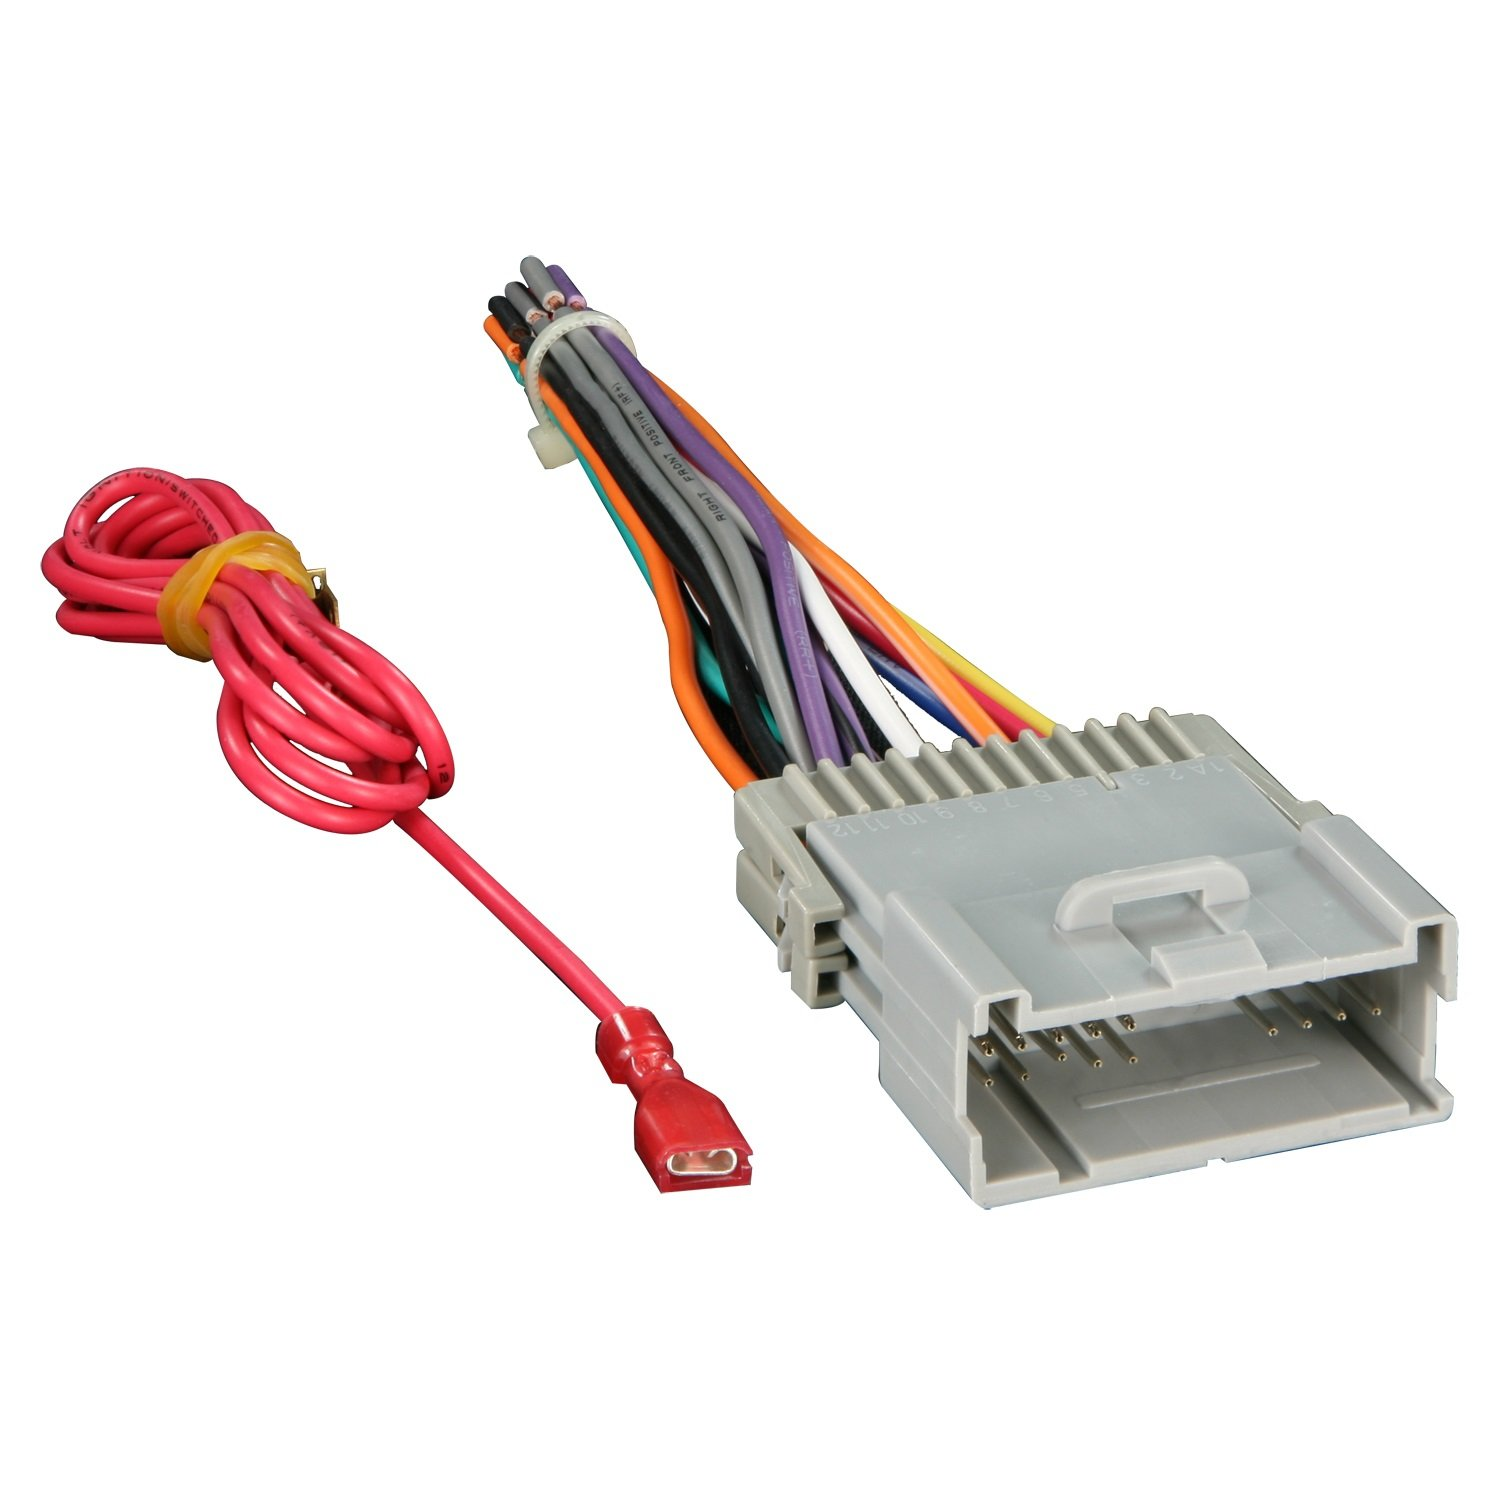 61eewxp9orL._SL1500_ amazon com metra 70 2003 radio wiring harness for gm 98 08 how to install wire harness car stereo at couponss.co